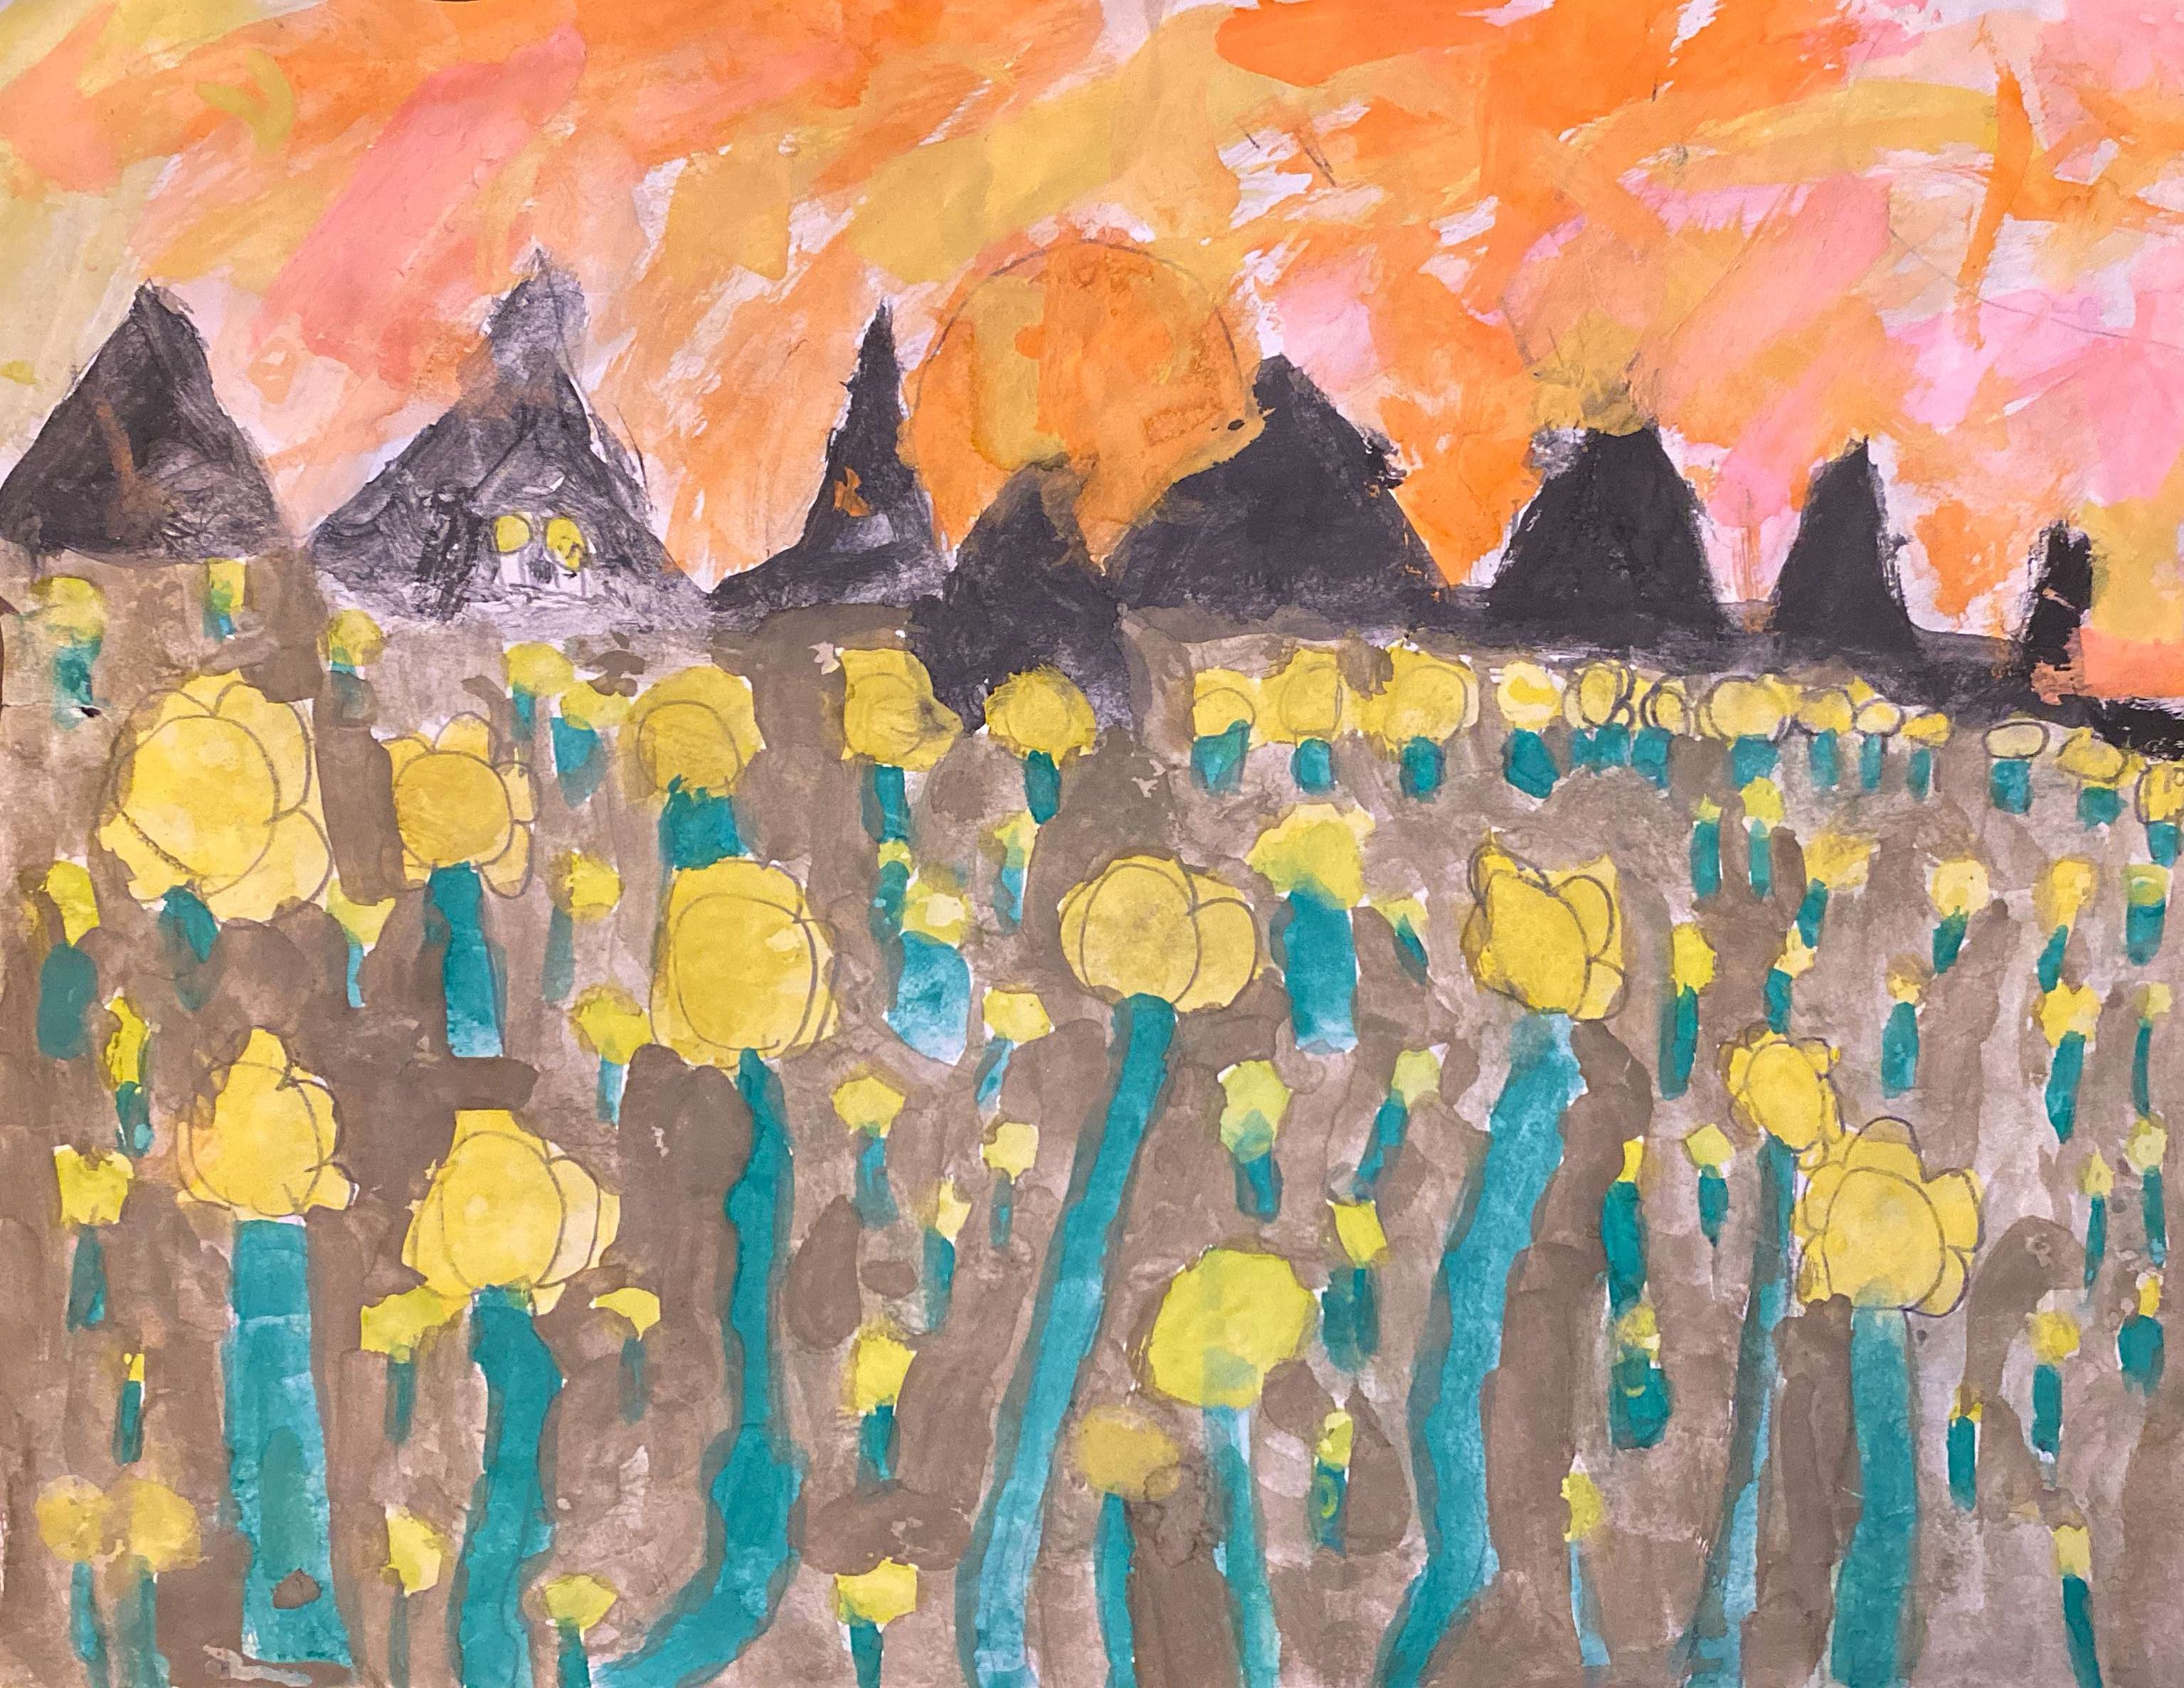 Sunflowers at Sunset by Treyson Filippi